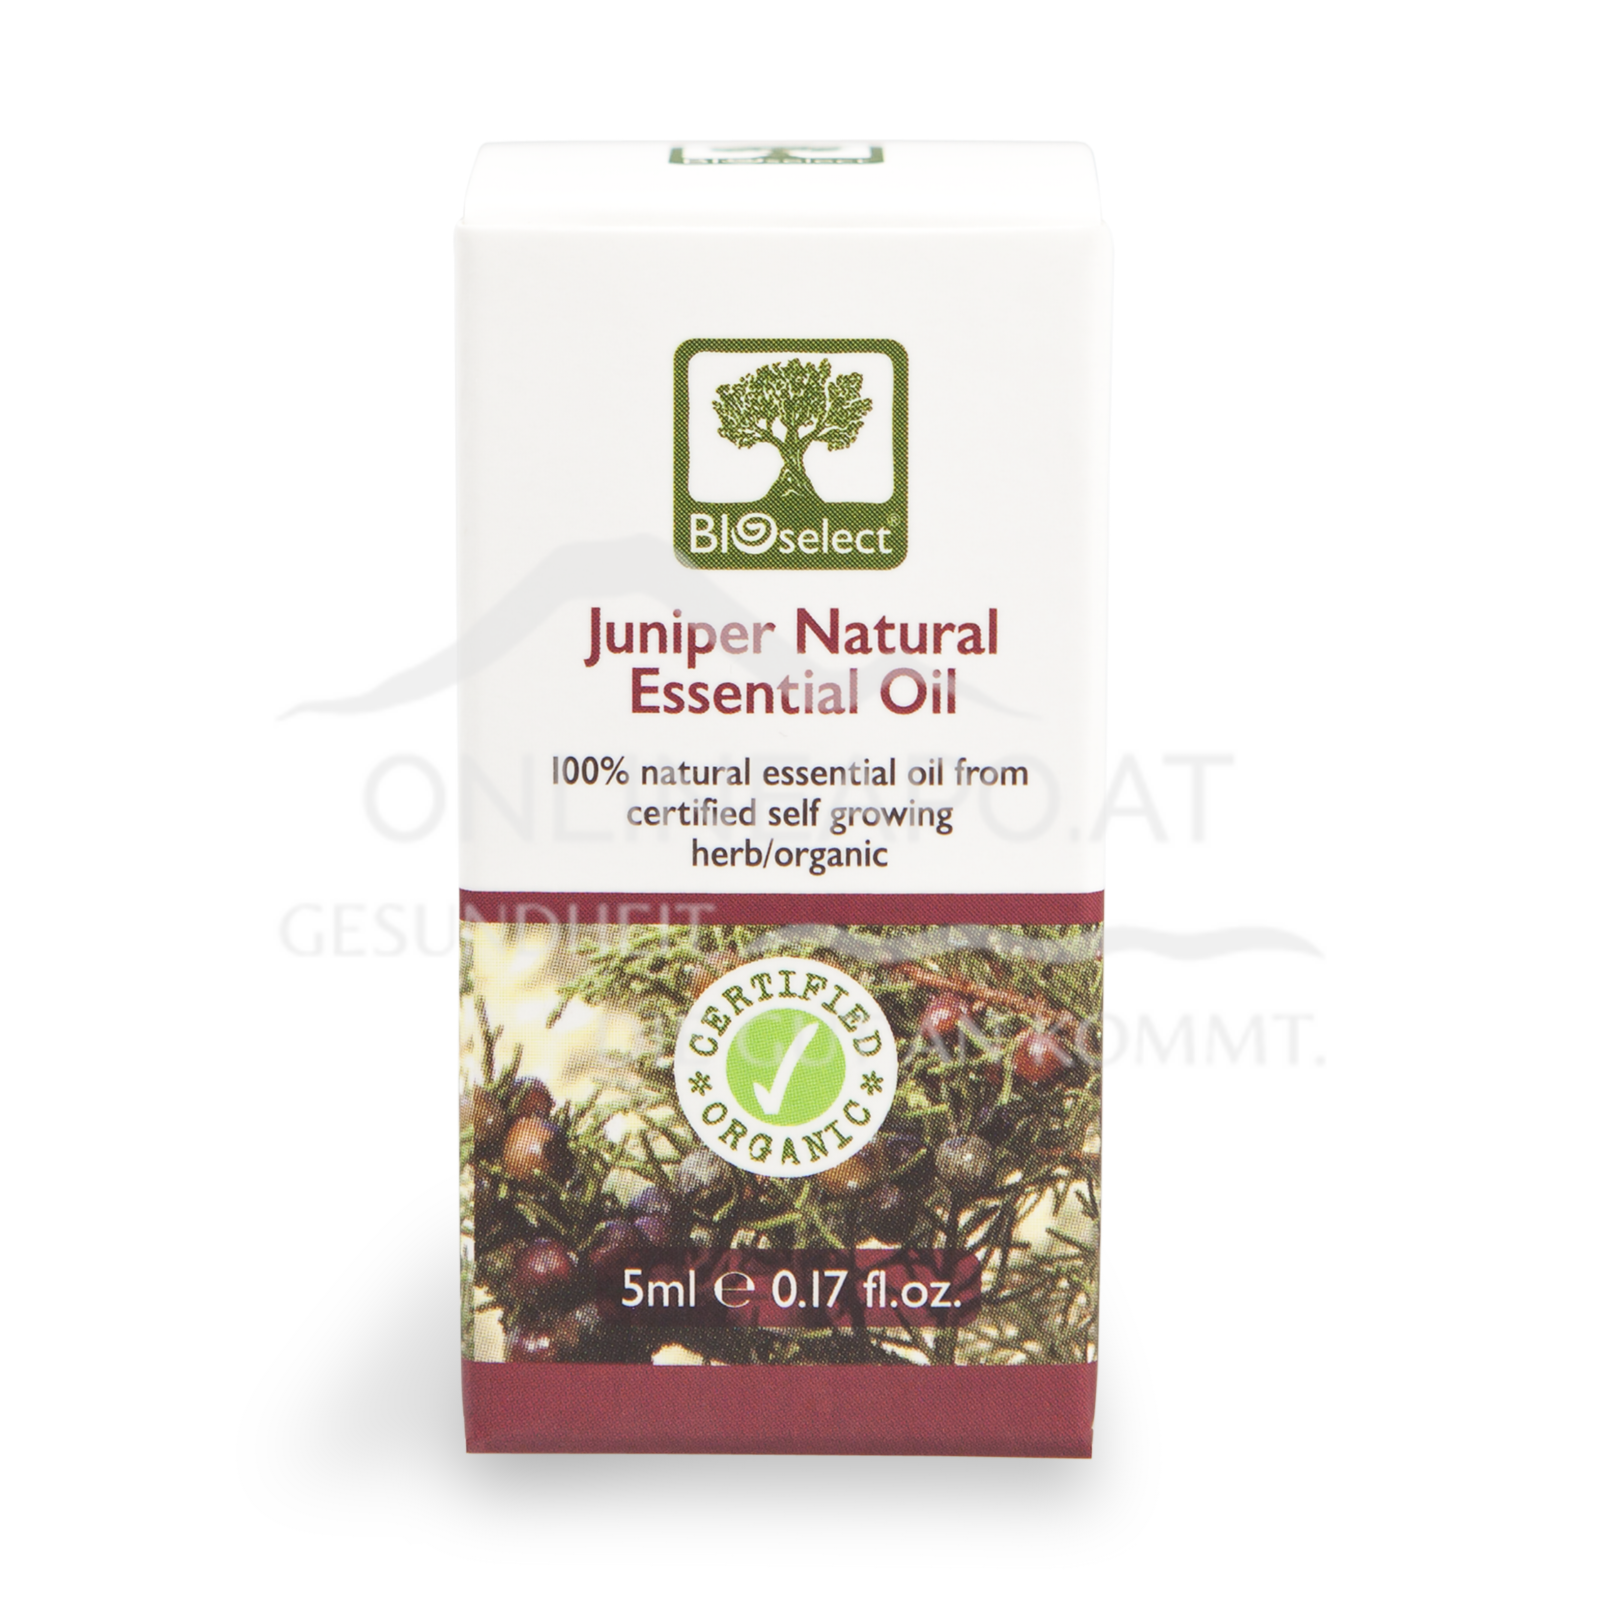 Bioselect Juniper Natural Essential Oil Certified Organic